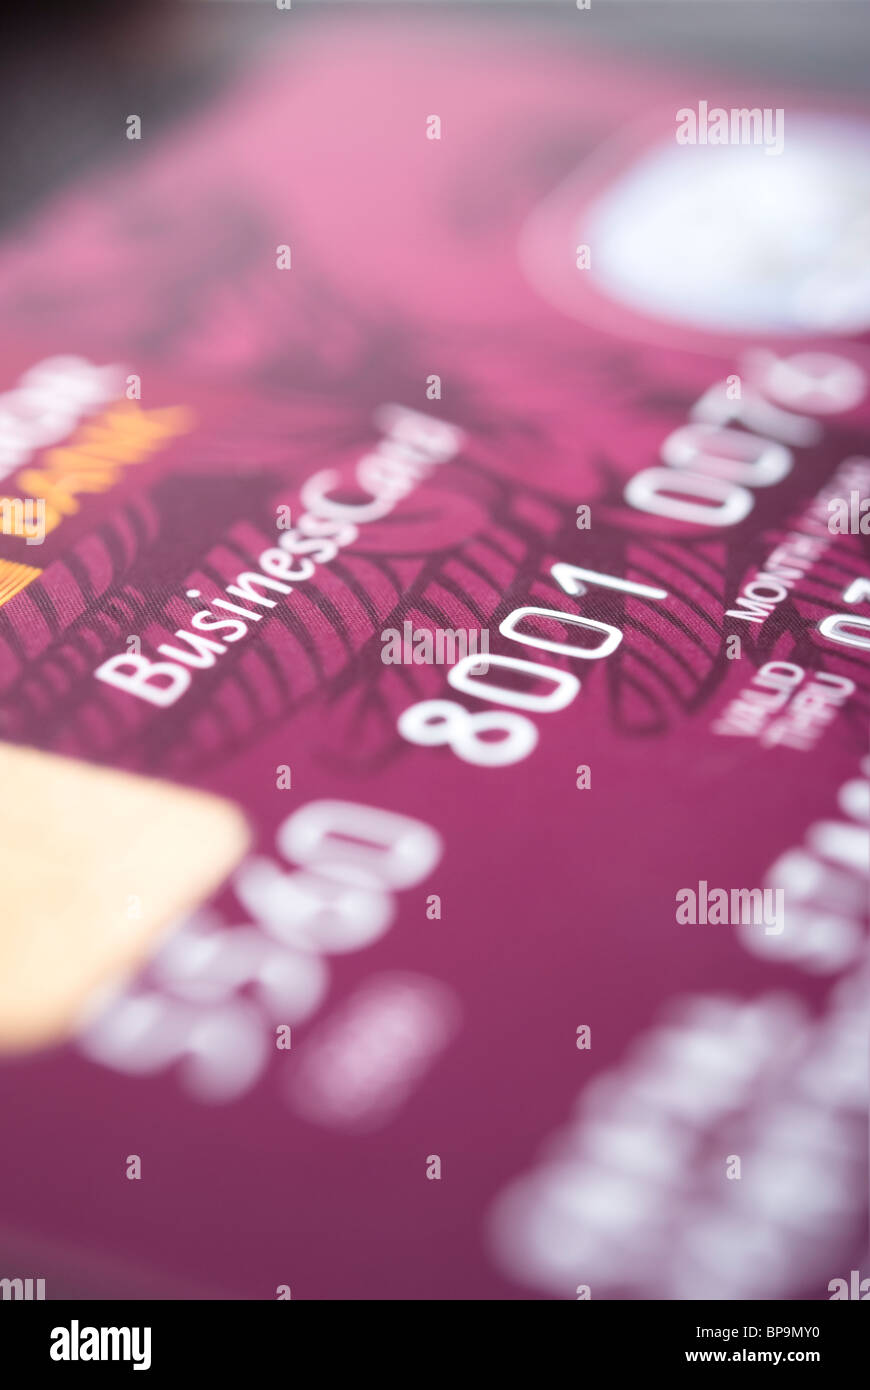 Details of a business credit card with some numbers stock photo details of a business credit card with some numbers colourmoves